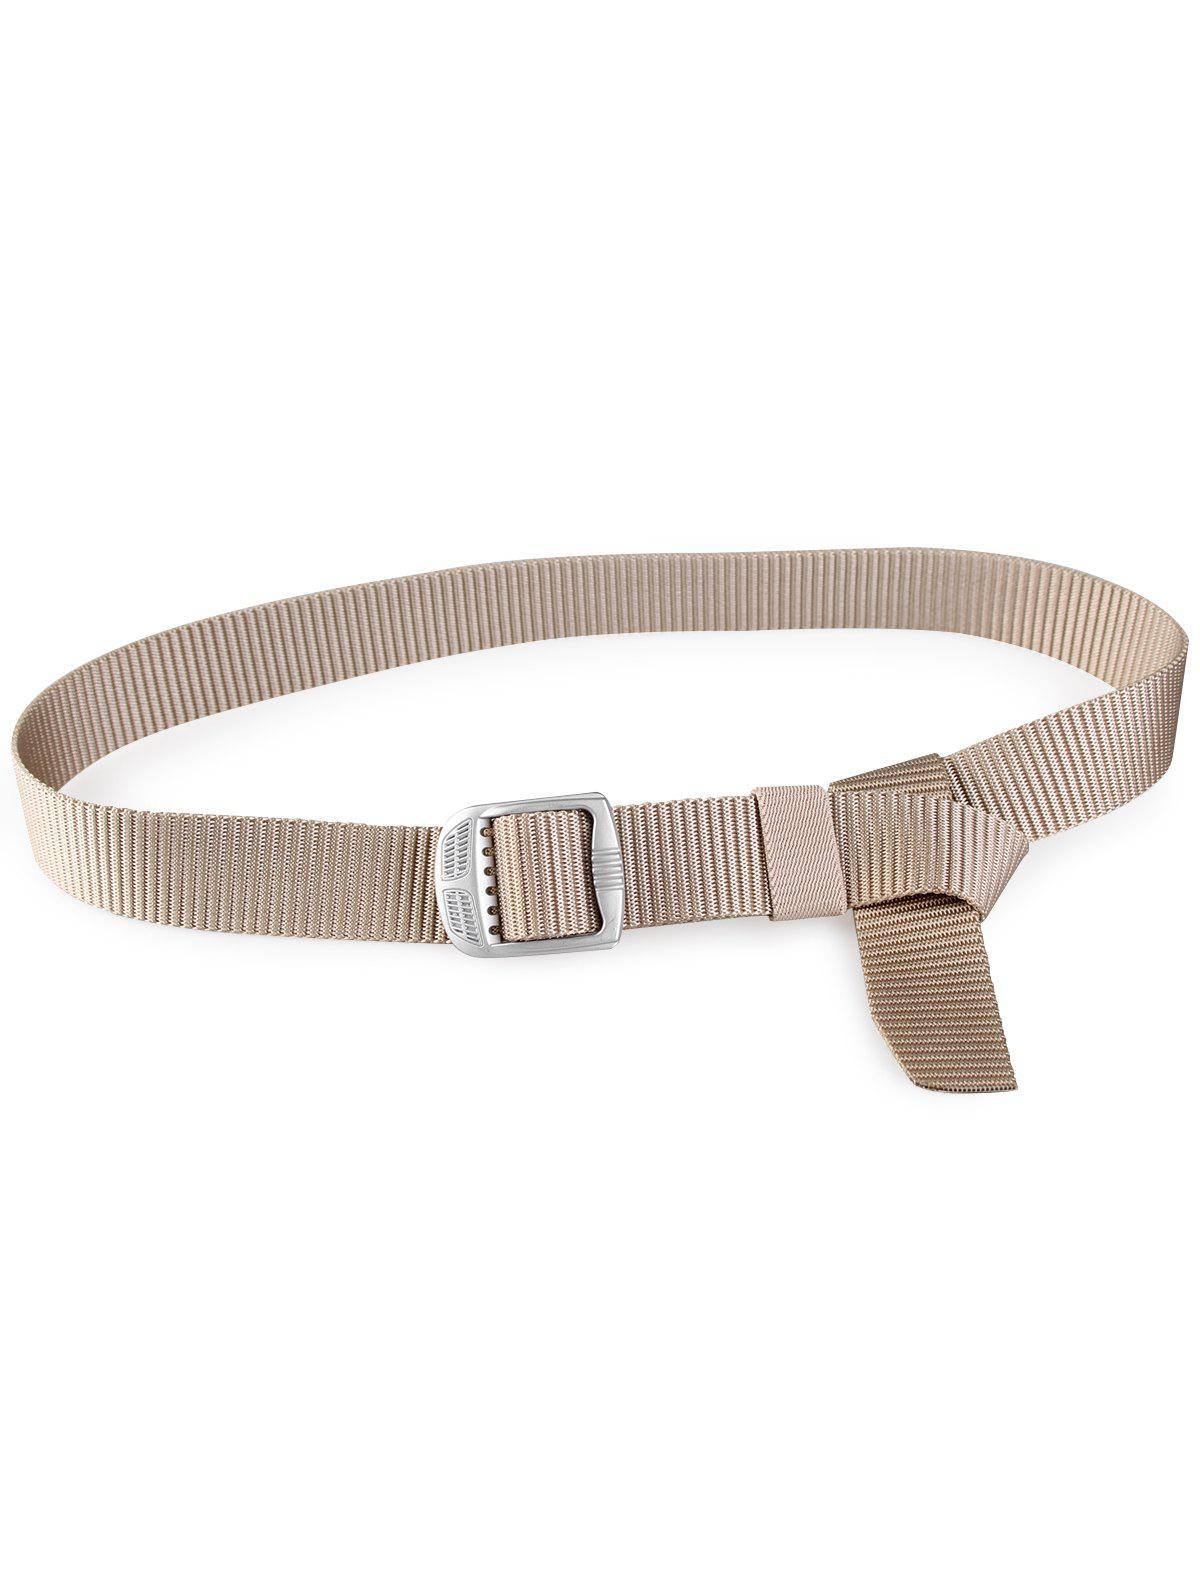 Fashion Marine Corps Military Canvas Men's Belt